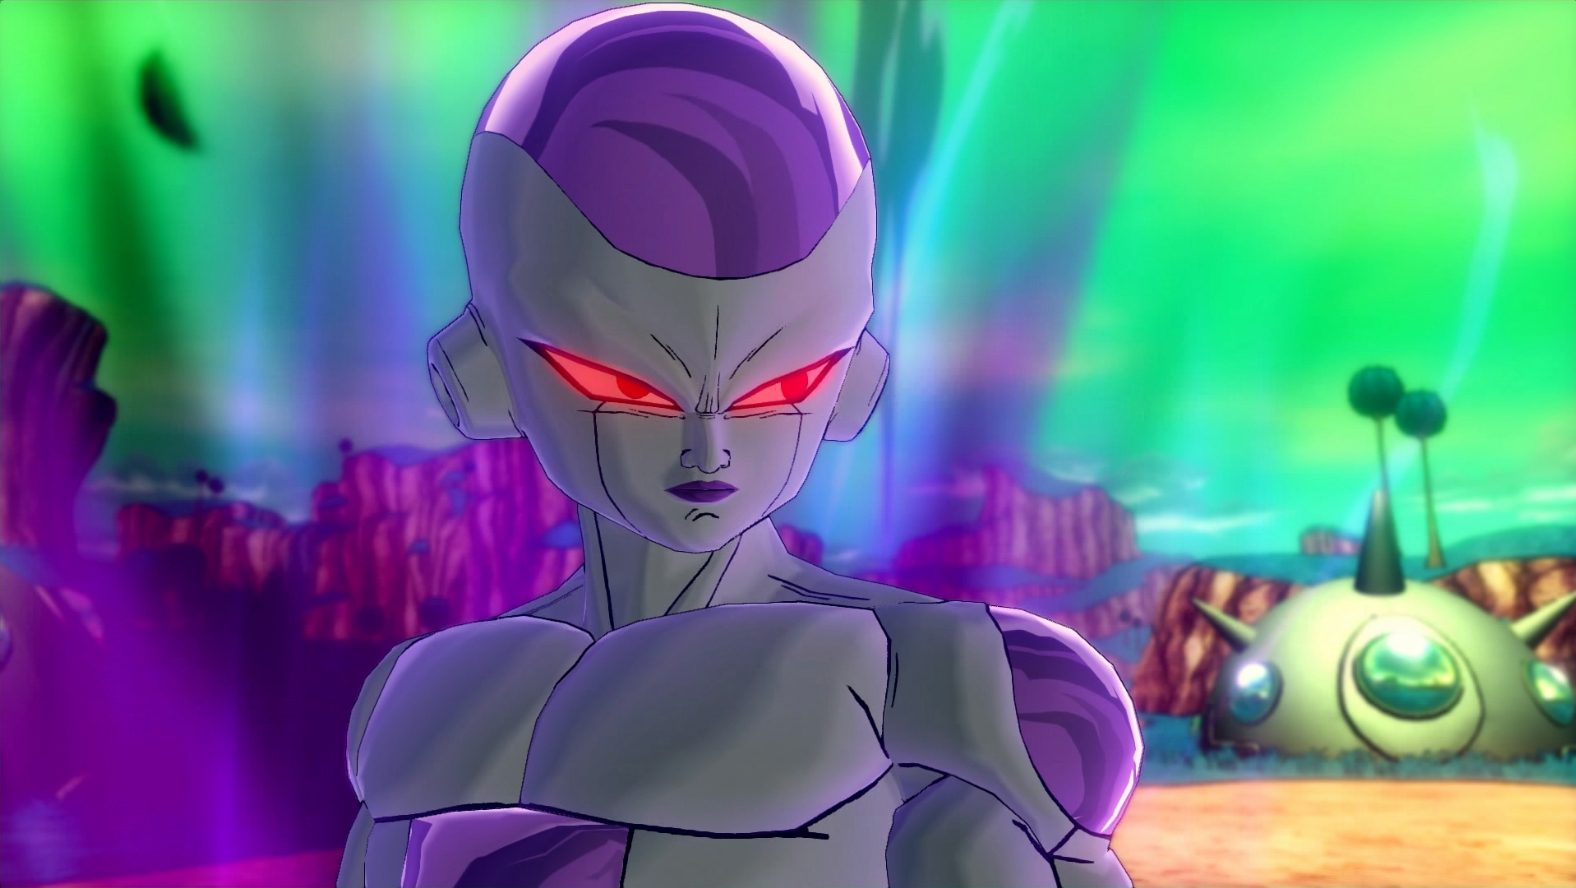 Dragon Ball Xenoverse Jan 2015 Screenshots 14